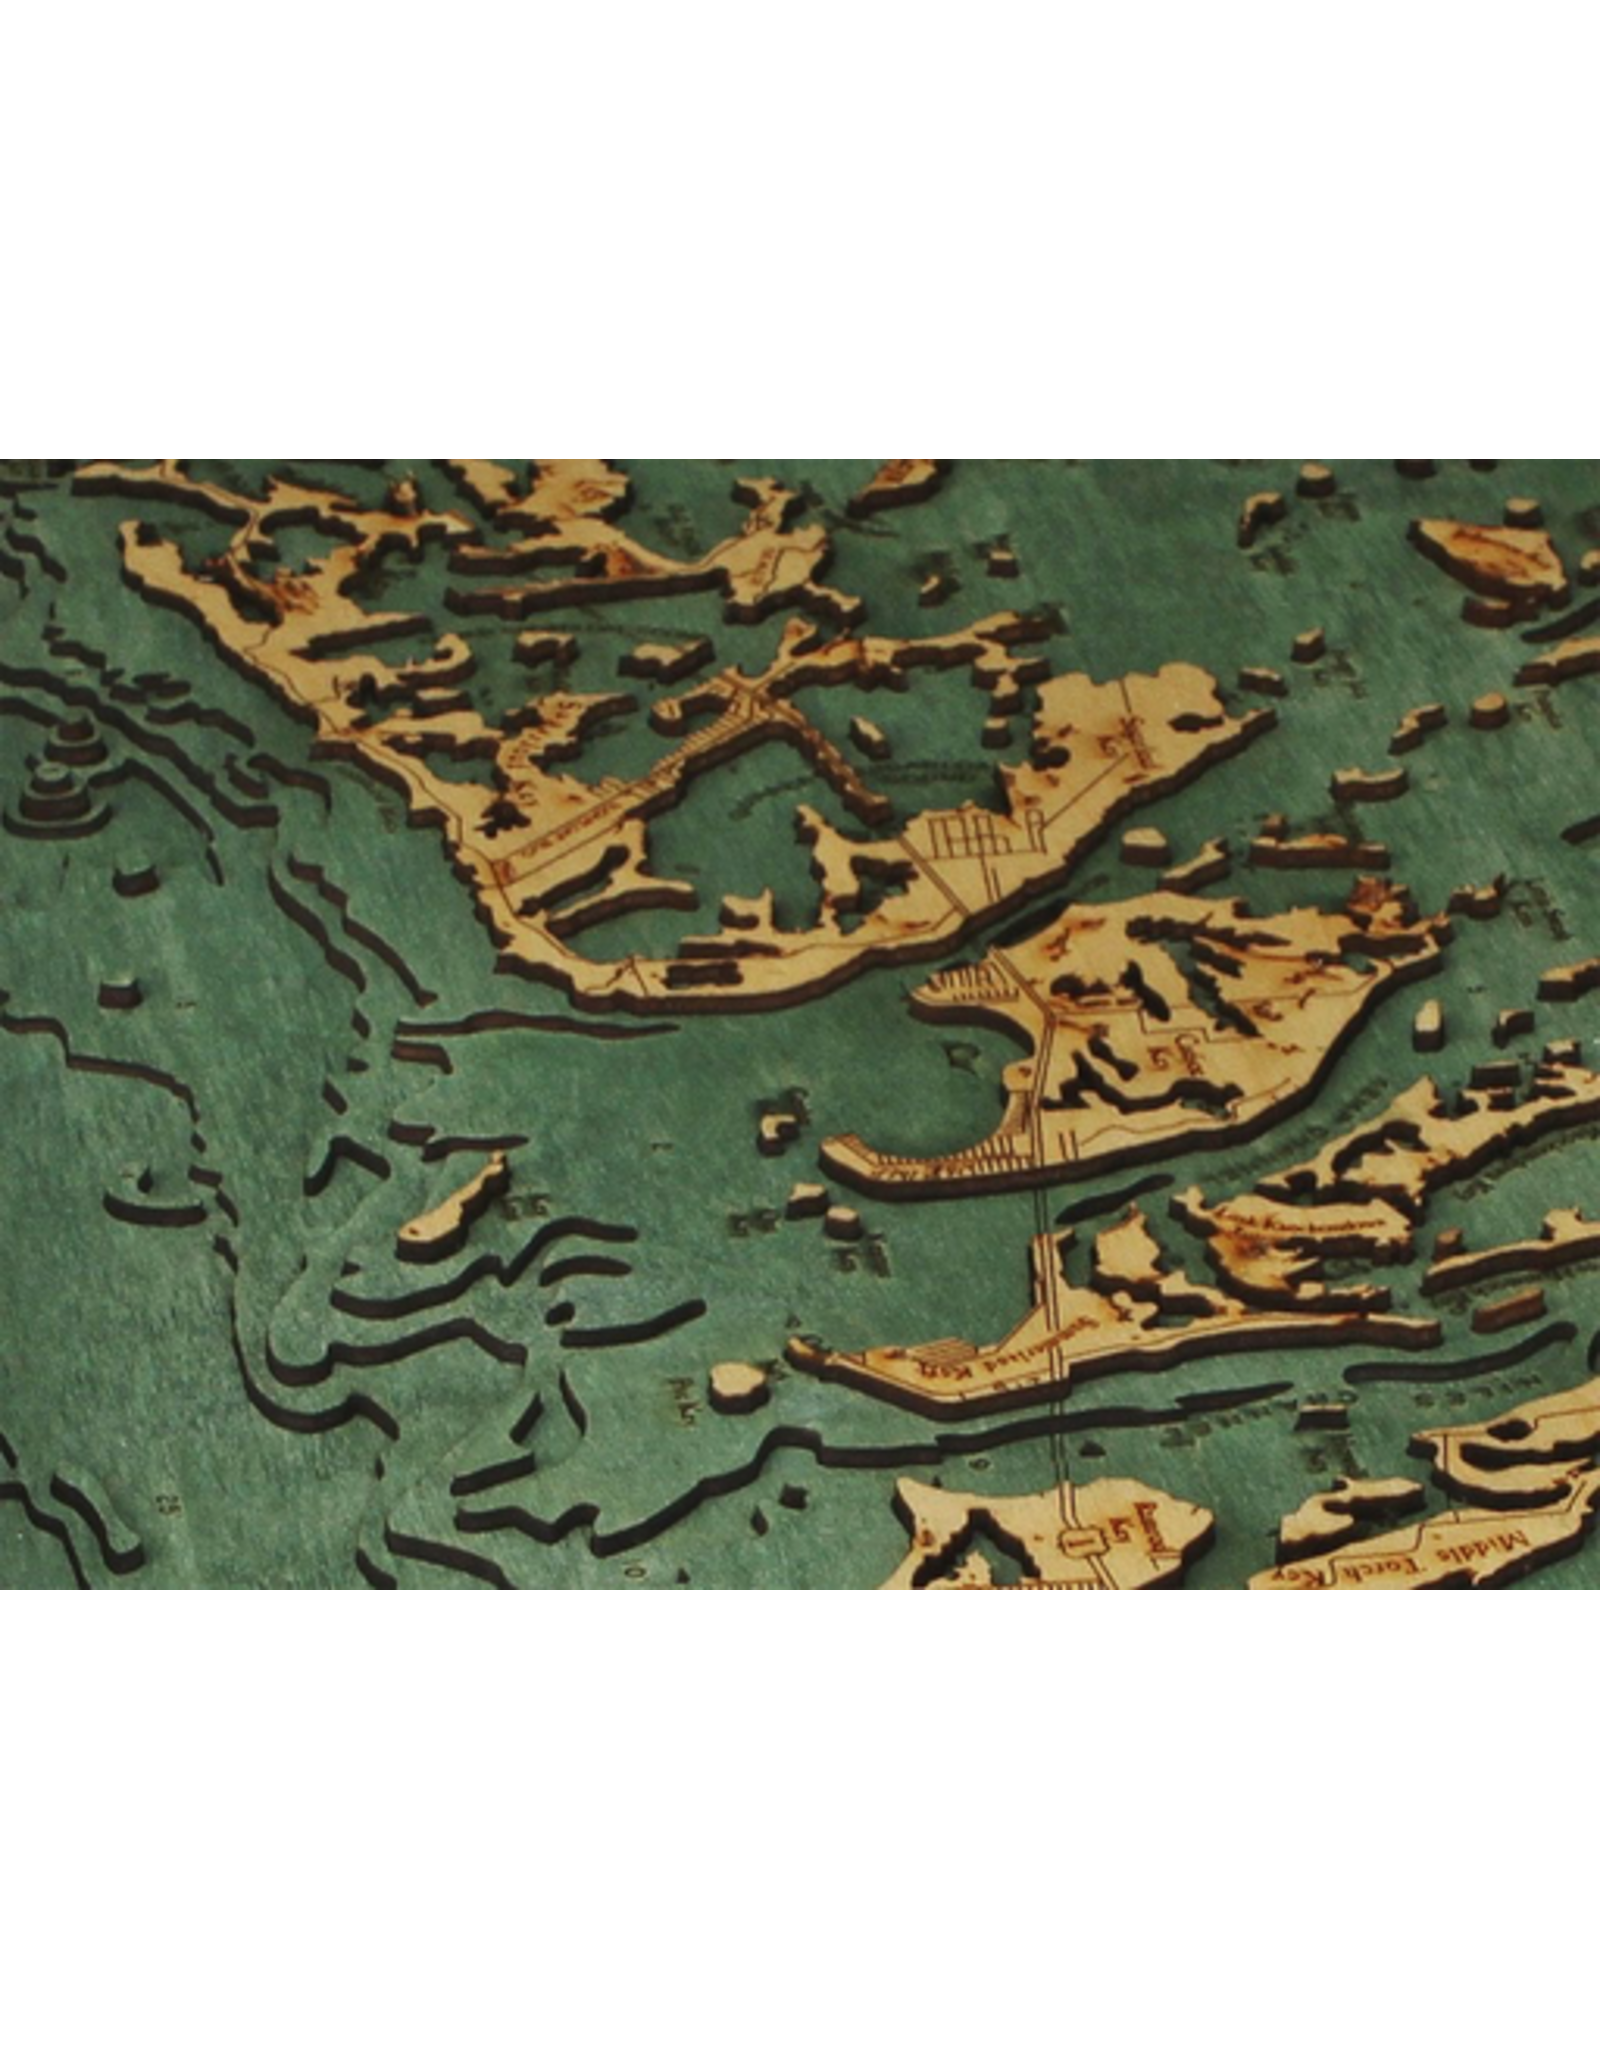 WoodCharts Lower Florida Keys (Bathymetric 3-D Wood Carved Nautical Chart)